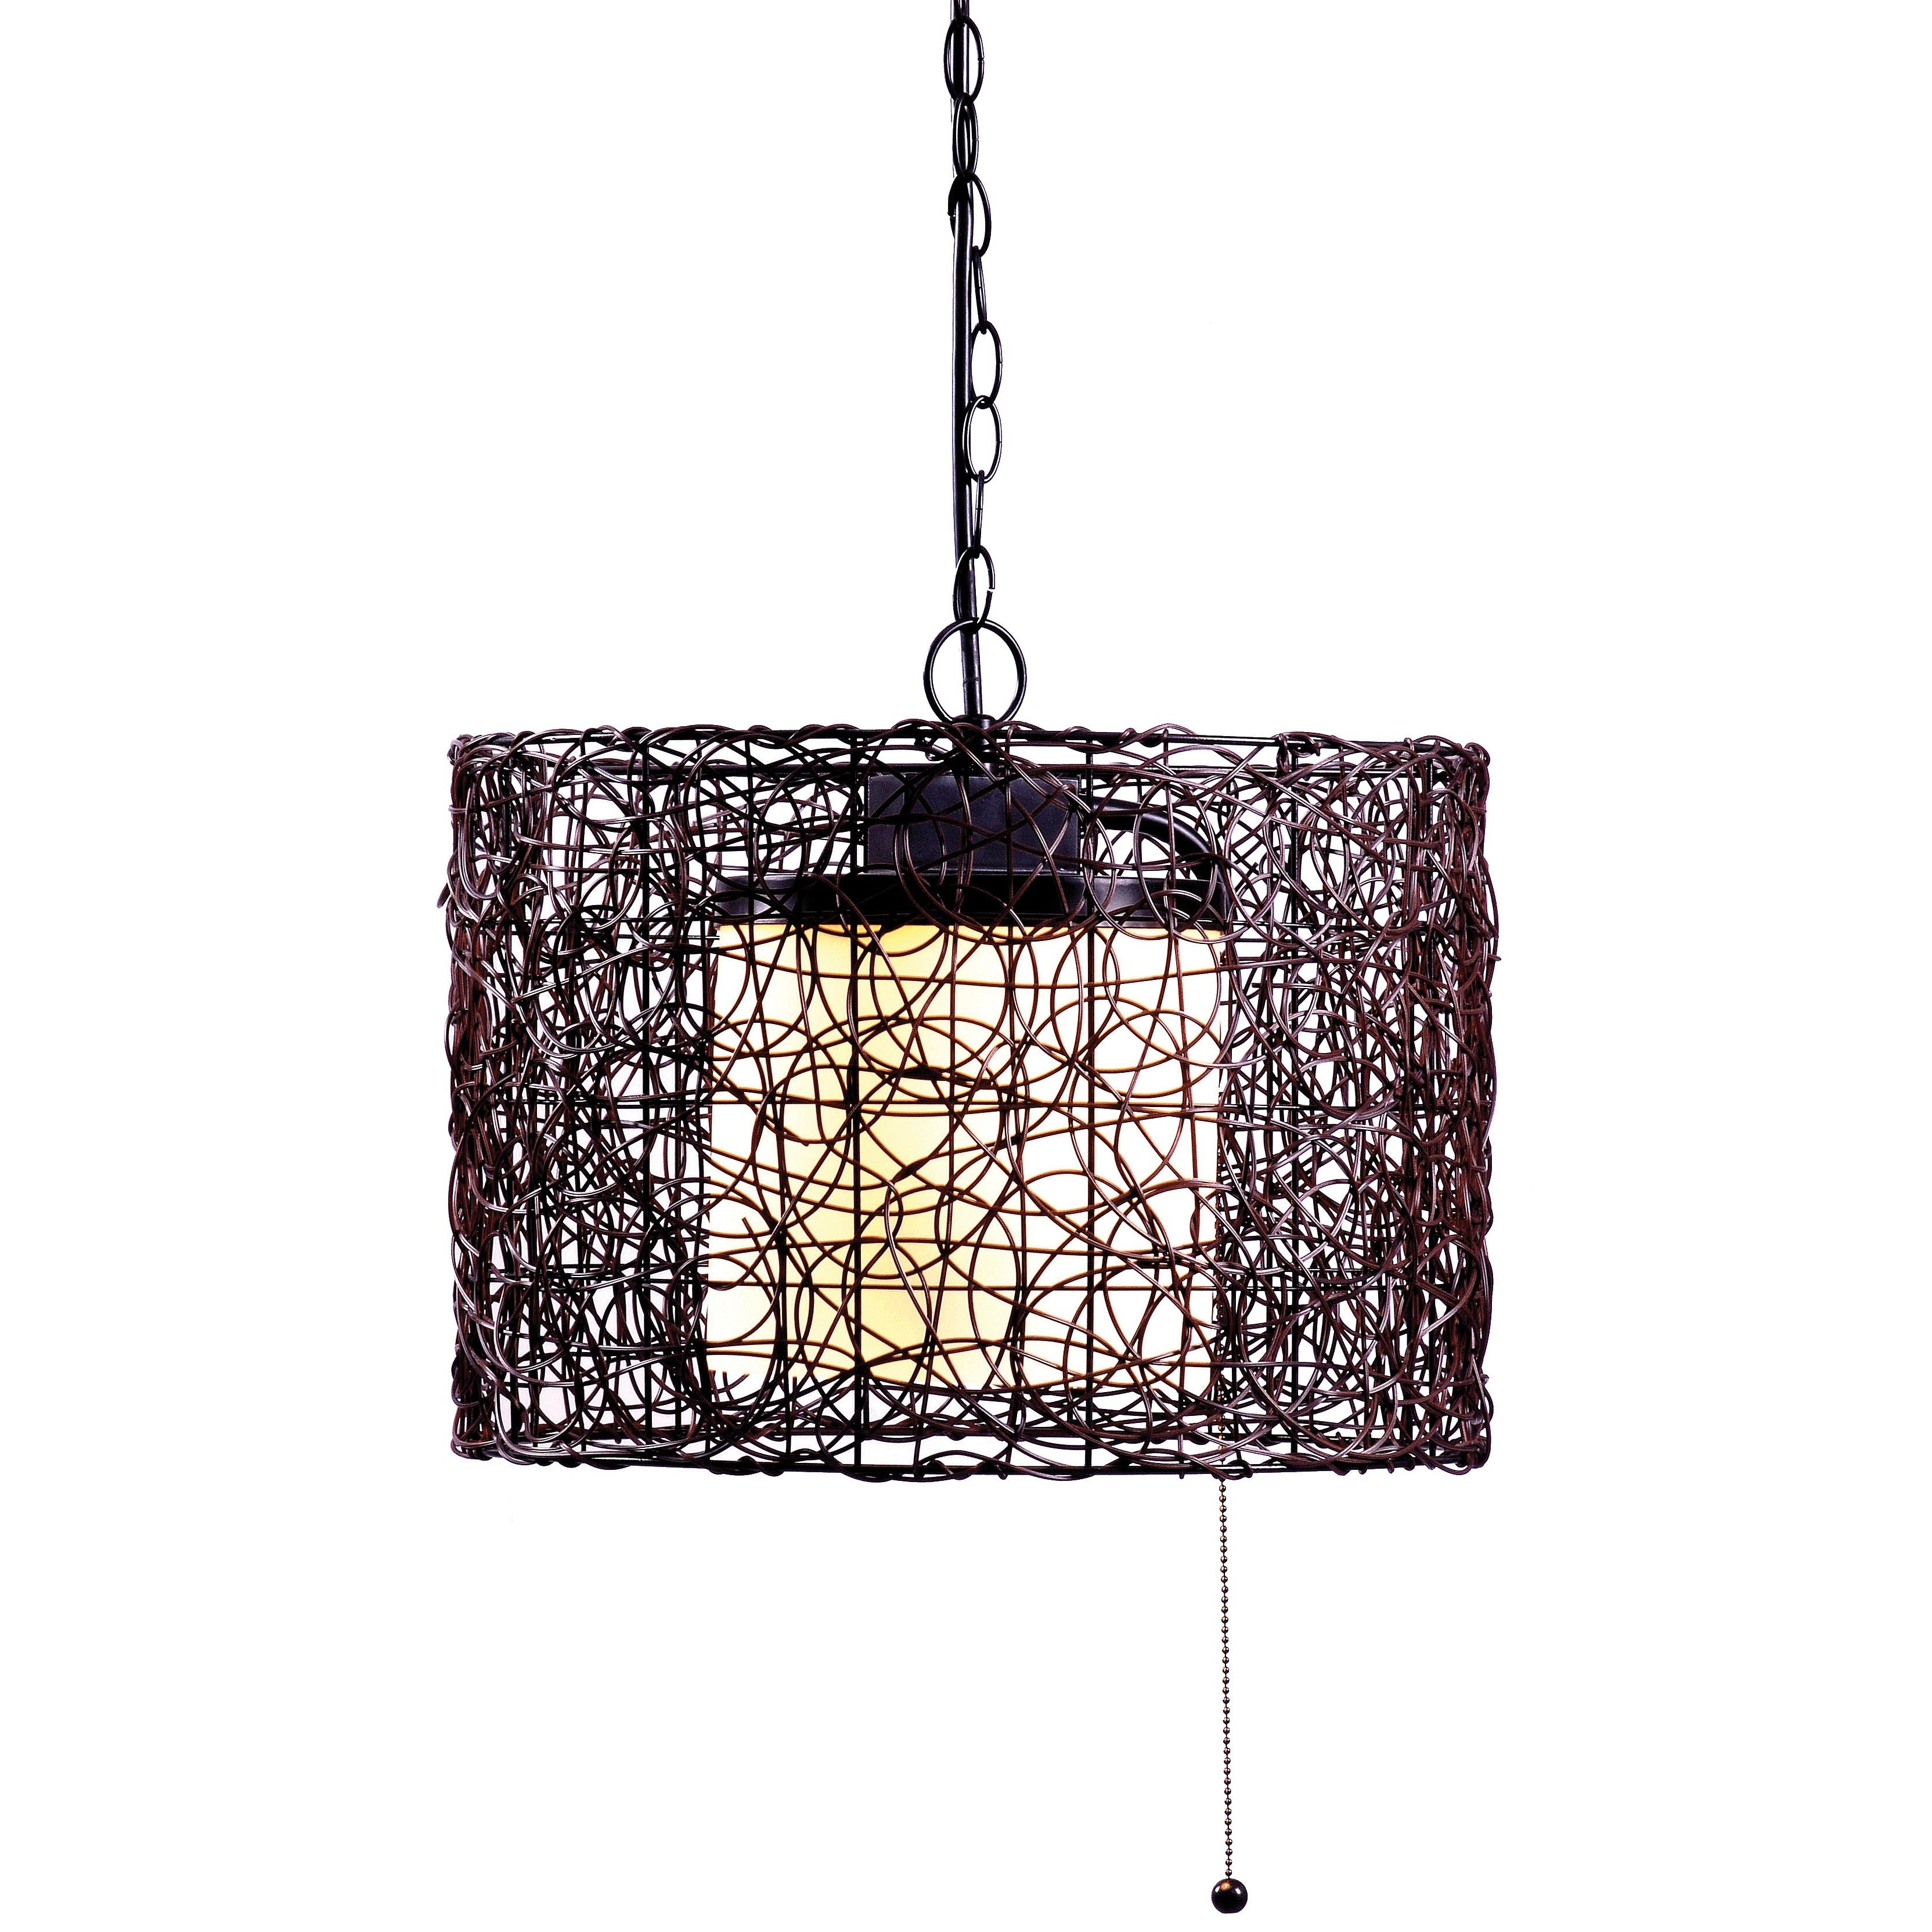 Rustic Outdoor Hanging Lights Wayfair Rosalind 1 Light Pendant ~ Haammss Inside Most Recently Released Modern Rustic Outdoor Lighting Att Wayfair (Gallery 4 of 20)